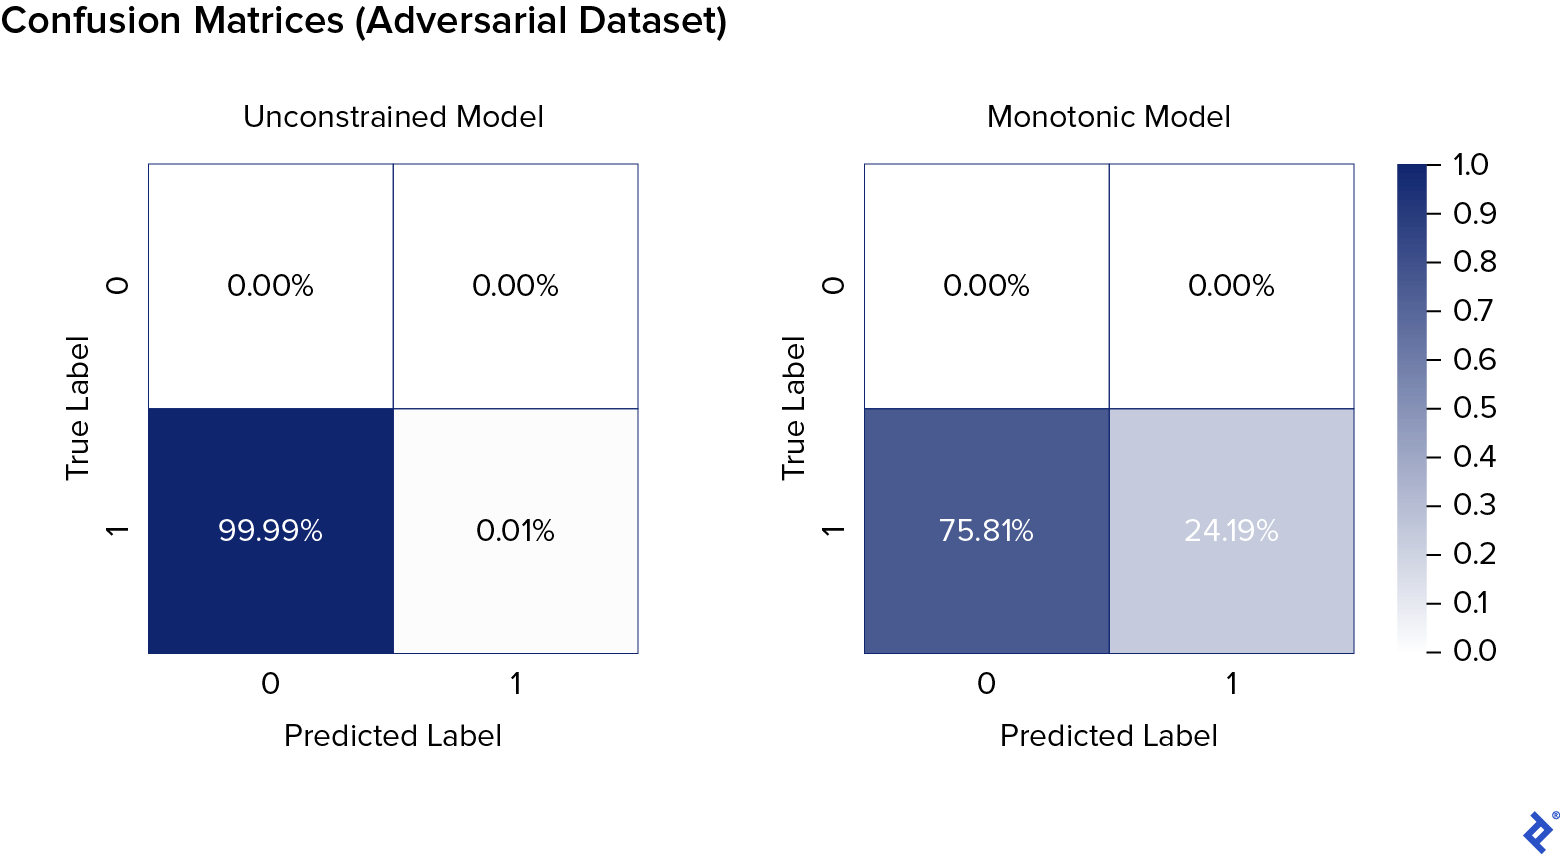 """Unconstrained vs monotonic AI models' training confusion matrices on the same adversarial dataset. Each is a two-by-two checkerboard. The Y axis is called """"True Label,"""" with zero at the top and one at the bottom. The X axis is called """"Predicted Label,"""" with zero on the left and one on the right. The color scale goes from white at zero to dark blue at 1.0. Both matrices' top rows contain only 0.00%. The left-hand (unconstrained) matrix's bottom row reads 99.99% and 0.01%, whereas the right-hand (monotonic) matrix's bottom row reads 75.81% and 24.19%."""